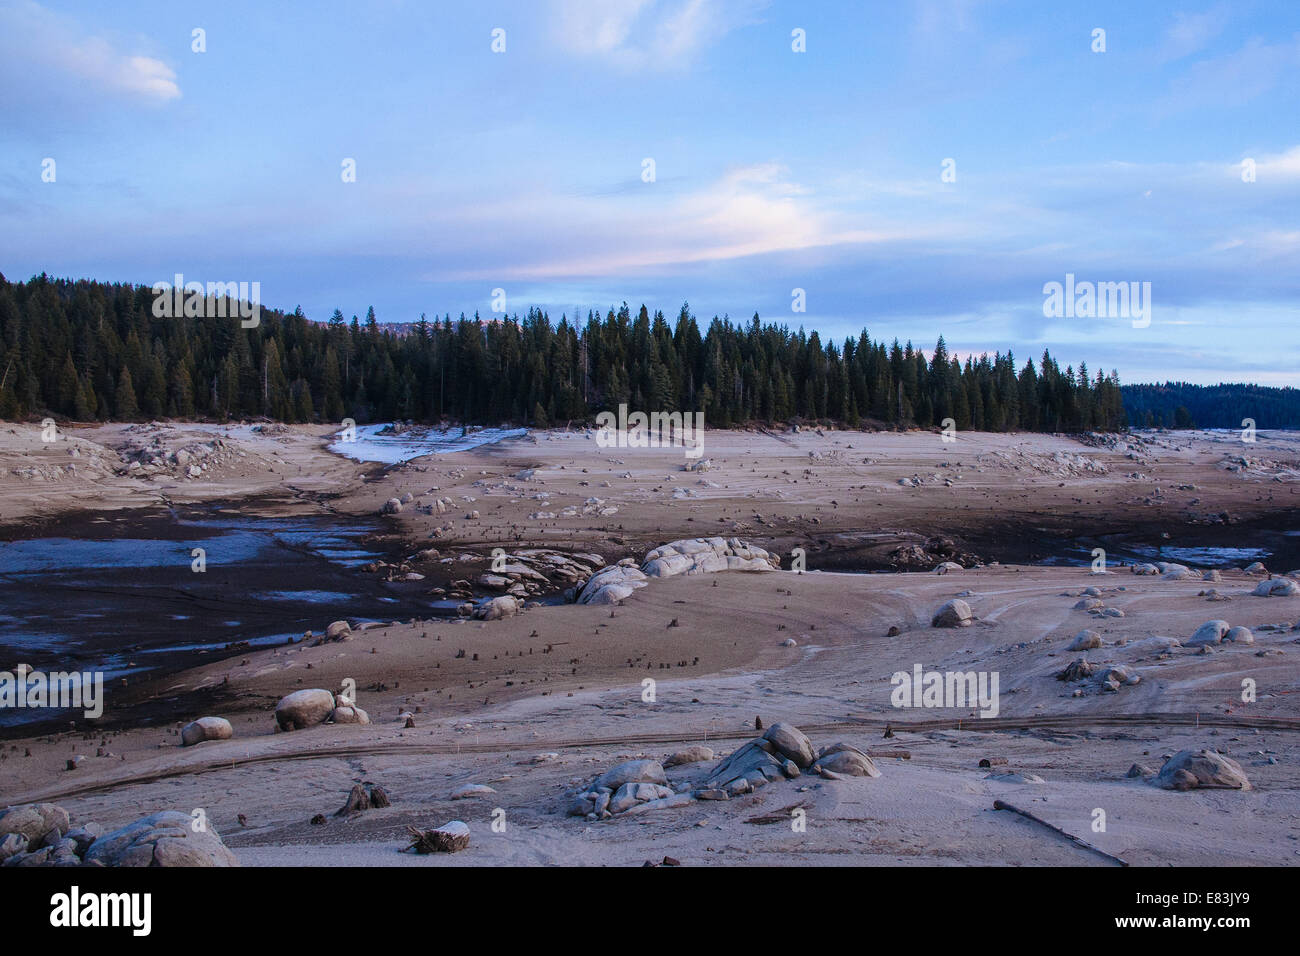 Drained Reservoir in Sierra Nevada, California - Stock Image